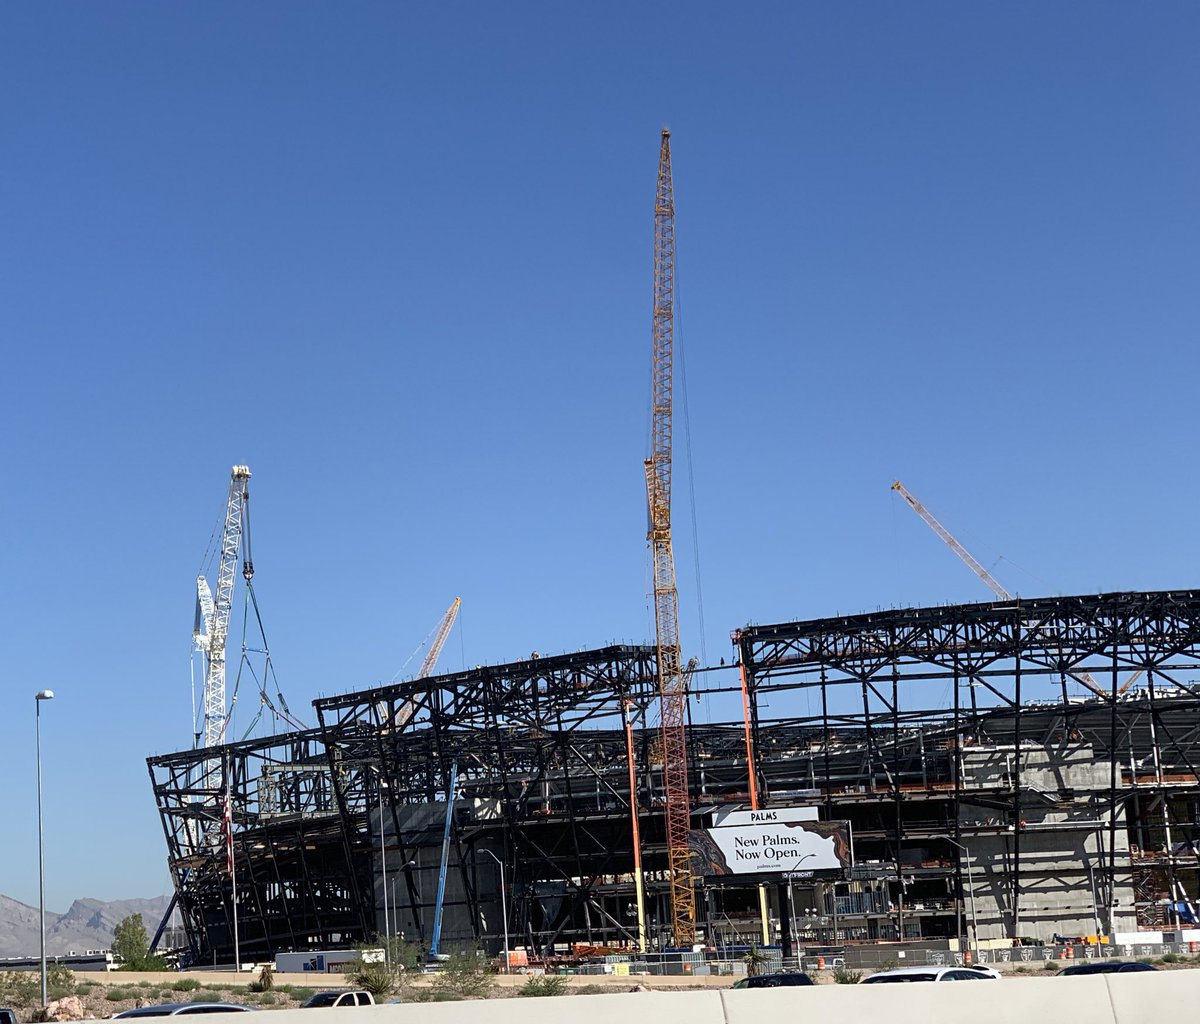 Elevators have been installed in the @LasVegasStadium and escalators are on site and mostly near their proposed locations ready to be installed. #vegas #raiders #stadium